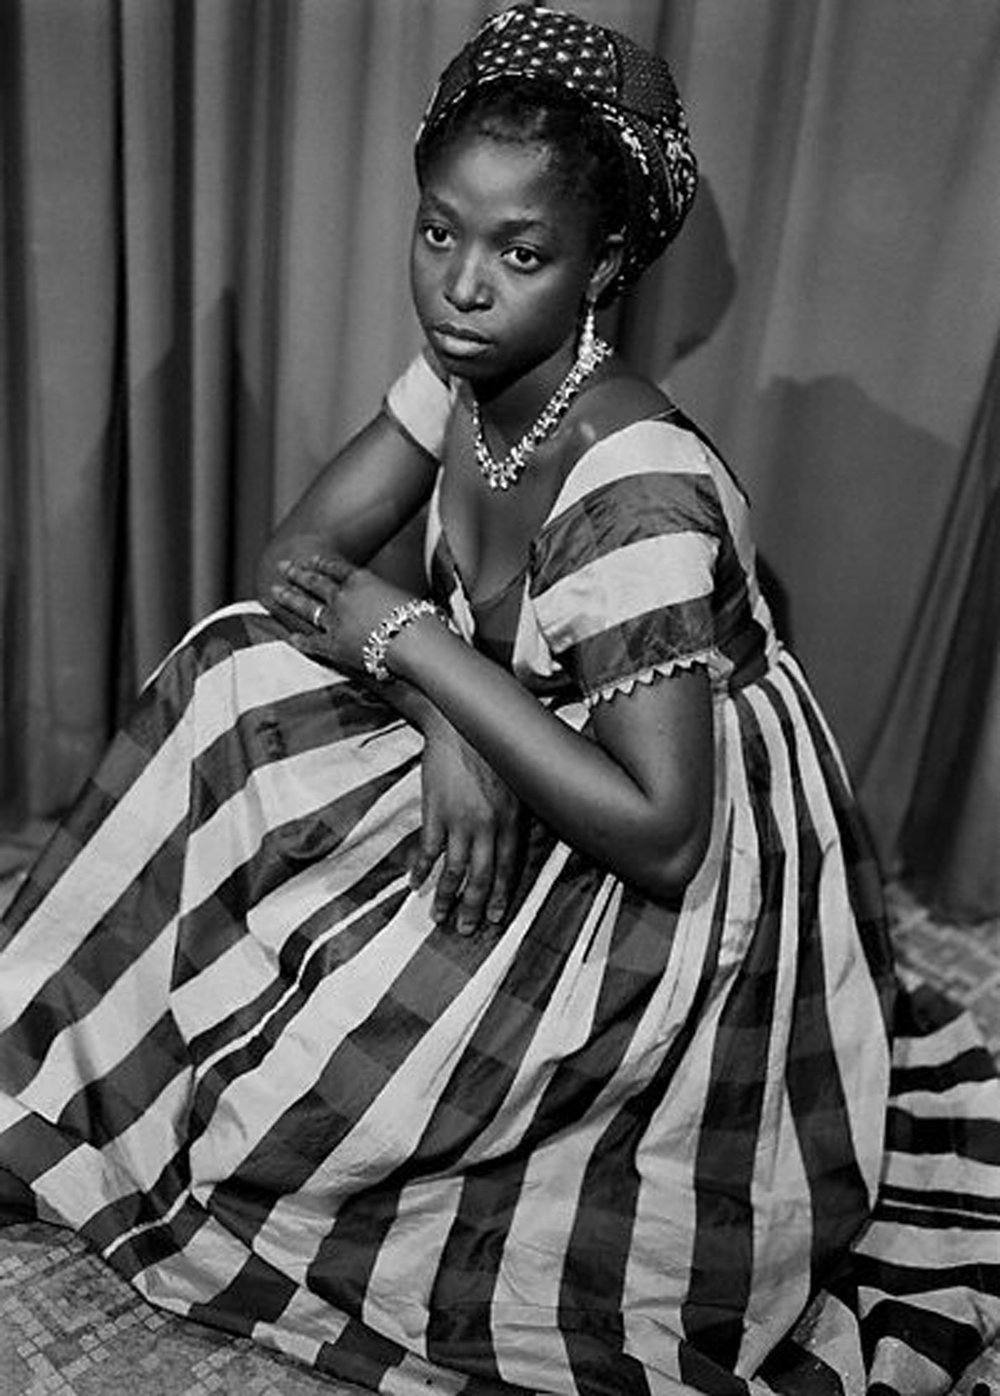 Seydou Keïta, Striped Dress, Mali, 1952